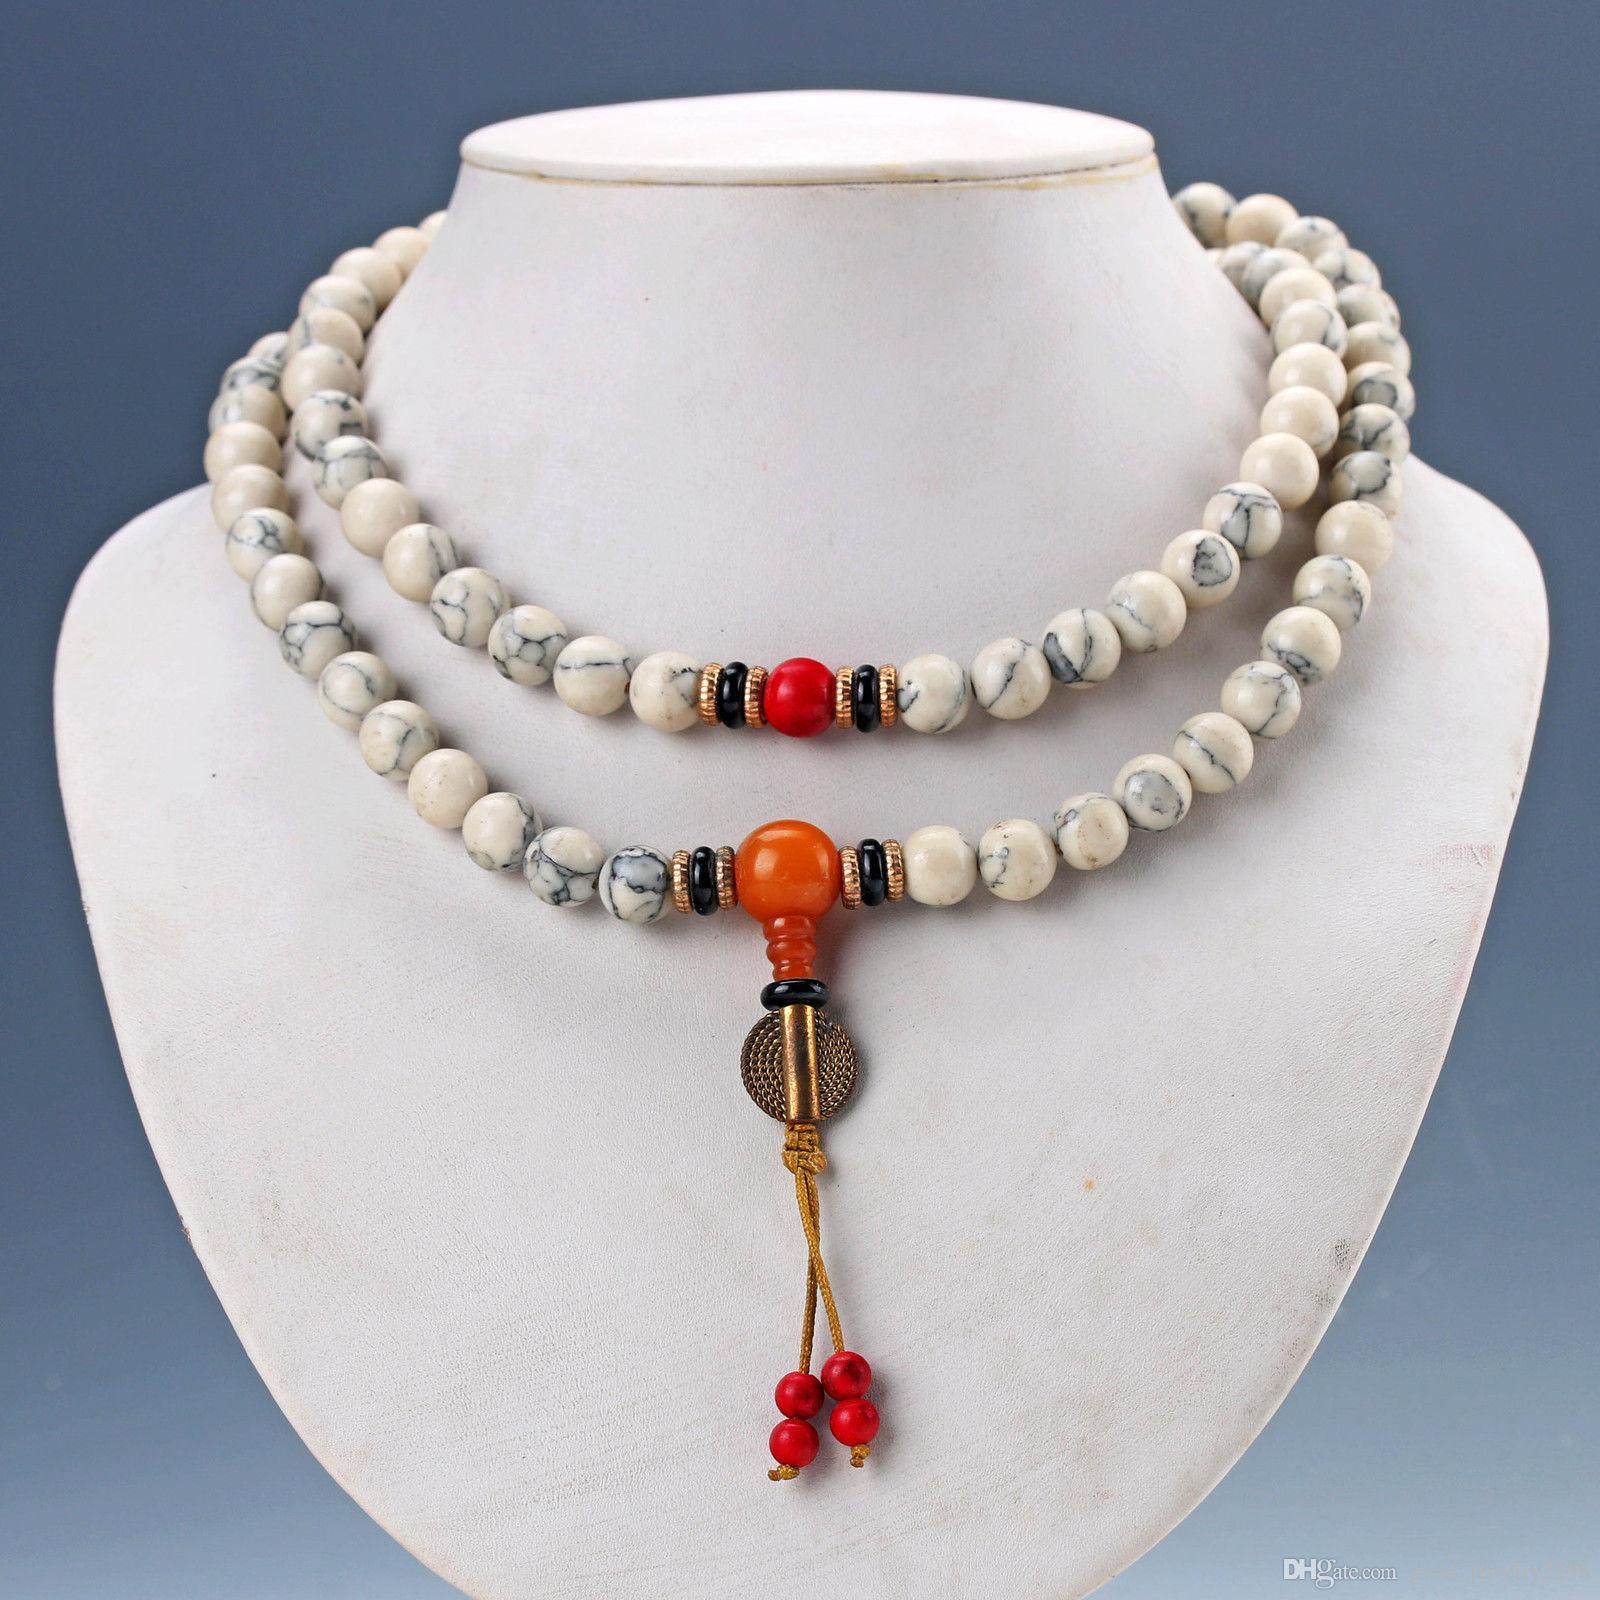 Chinese Exquisite Porcelain Beads Handwork Necklaces & Pendant D1133